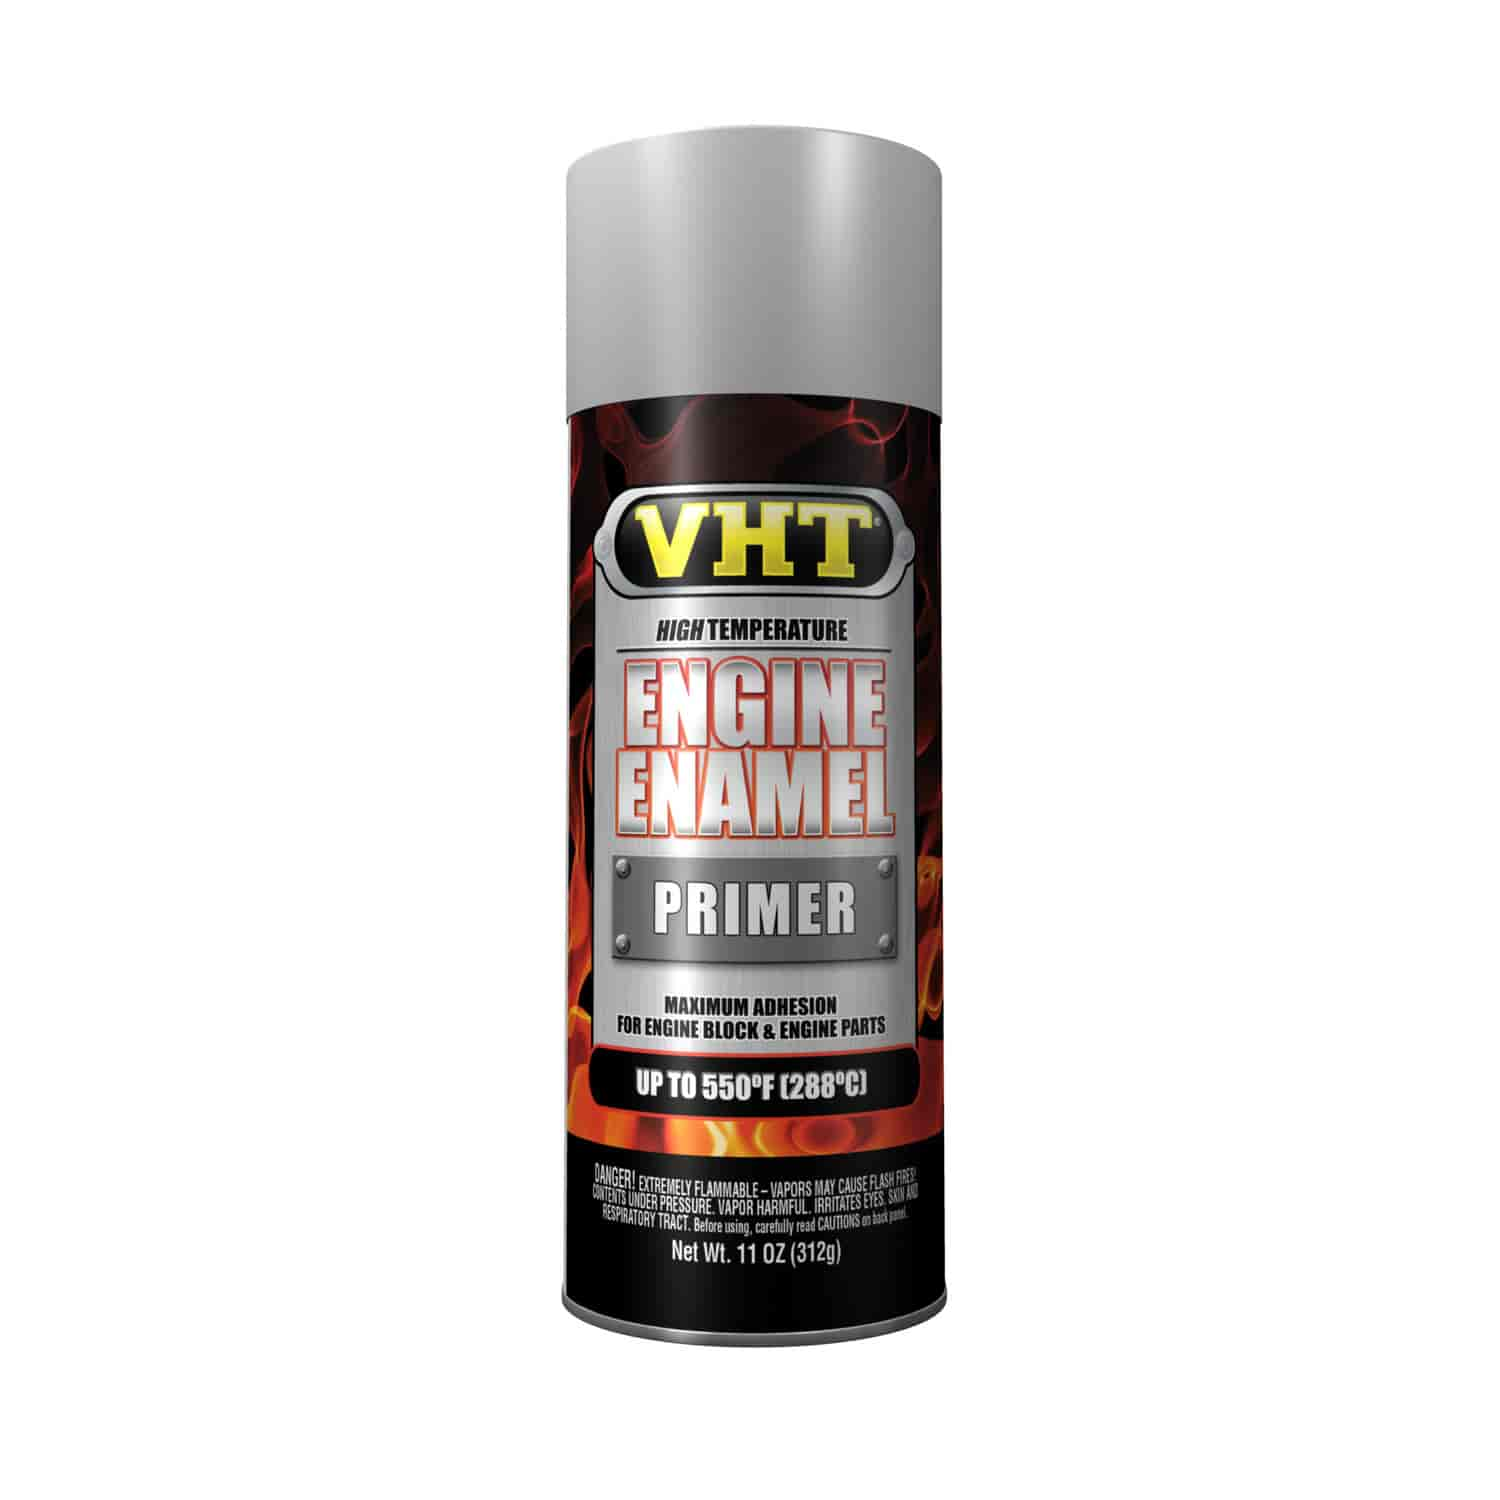 VHT SP148 - VHT Engine Enamel